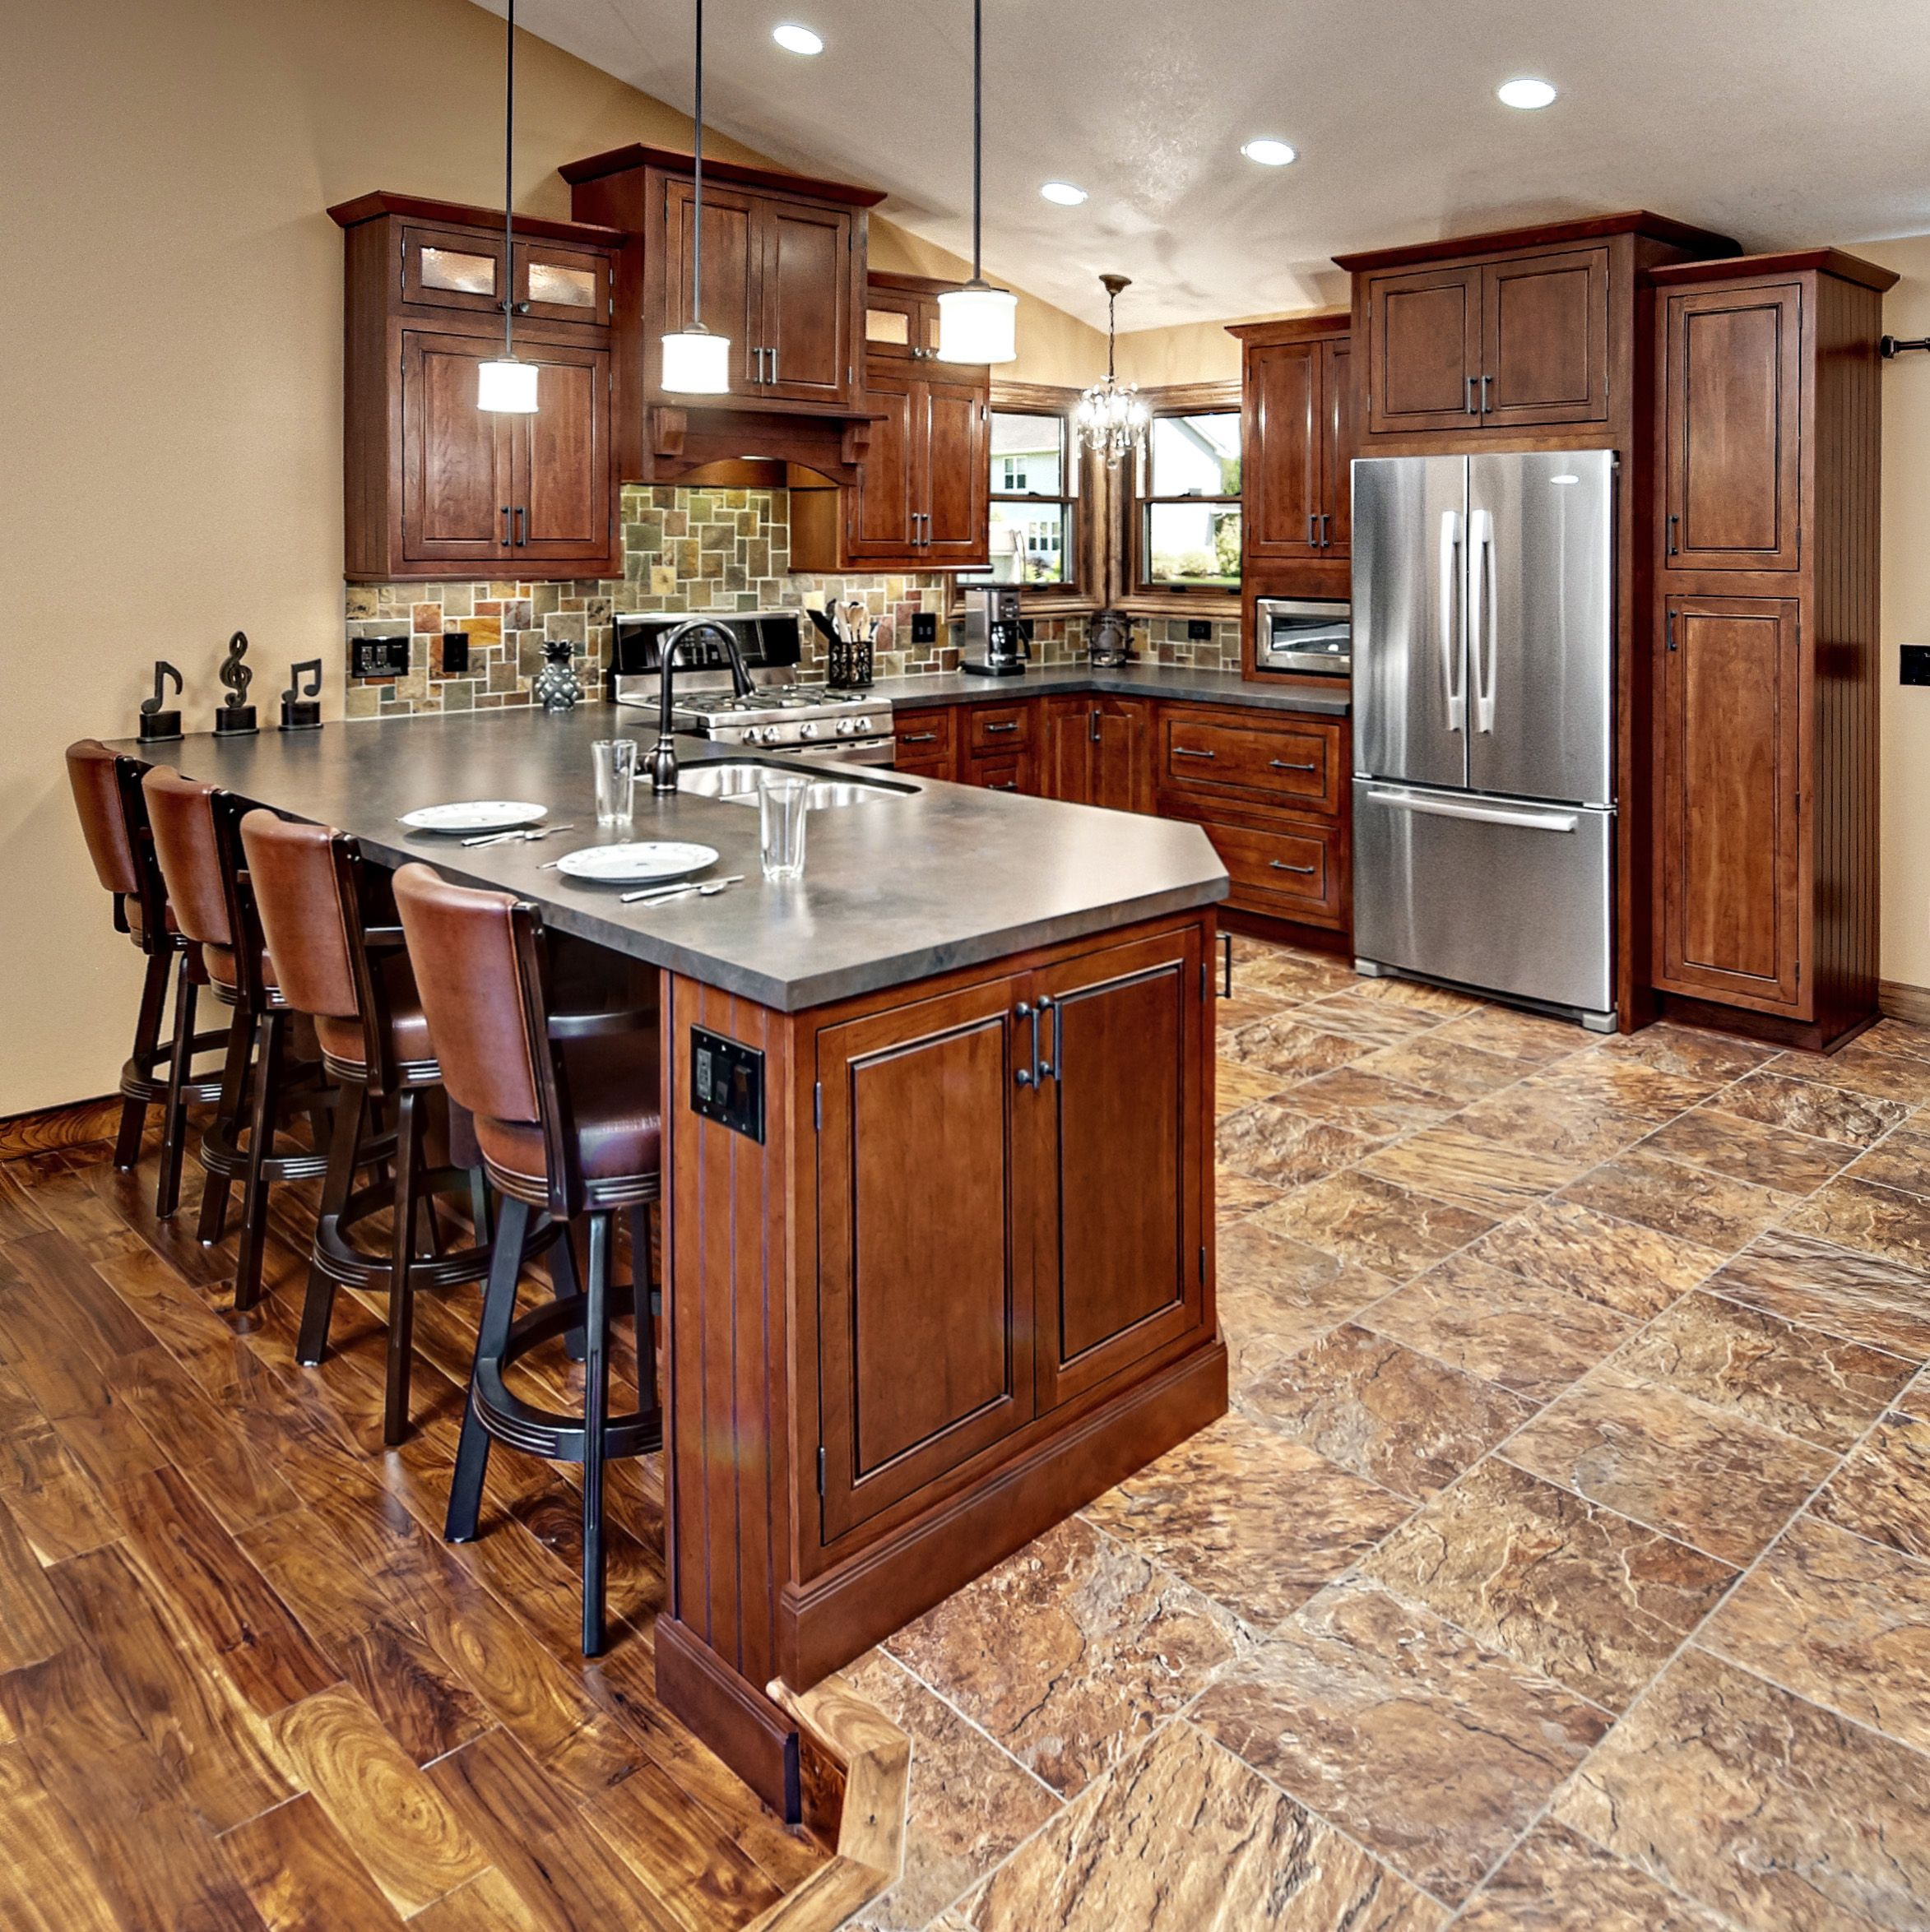 Kitchen Remodel Cherry Cabinets: The Kitchen Cabinets Are The Fairmont Inset Style From